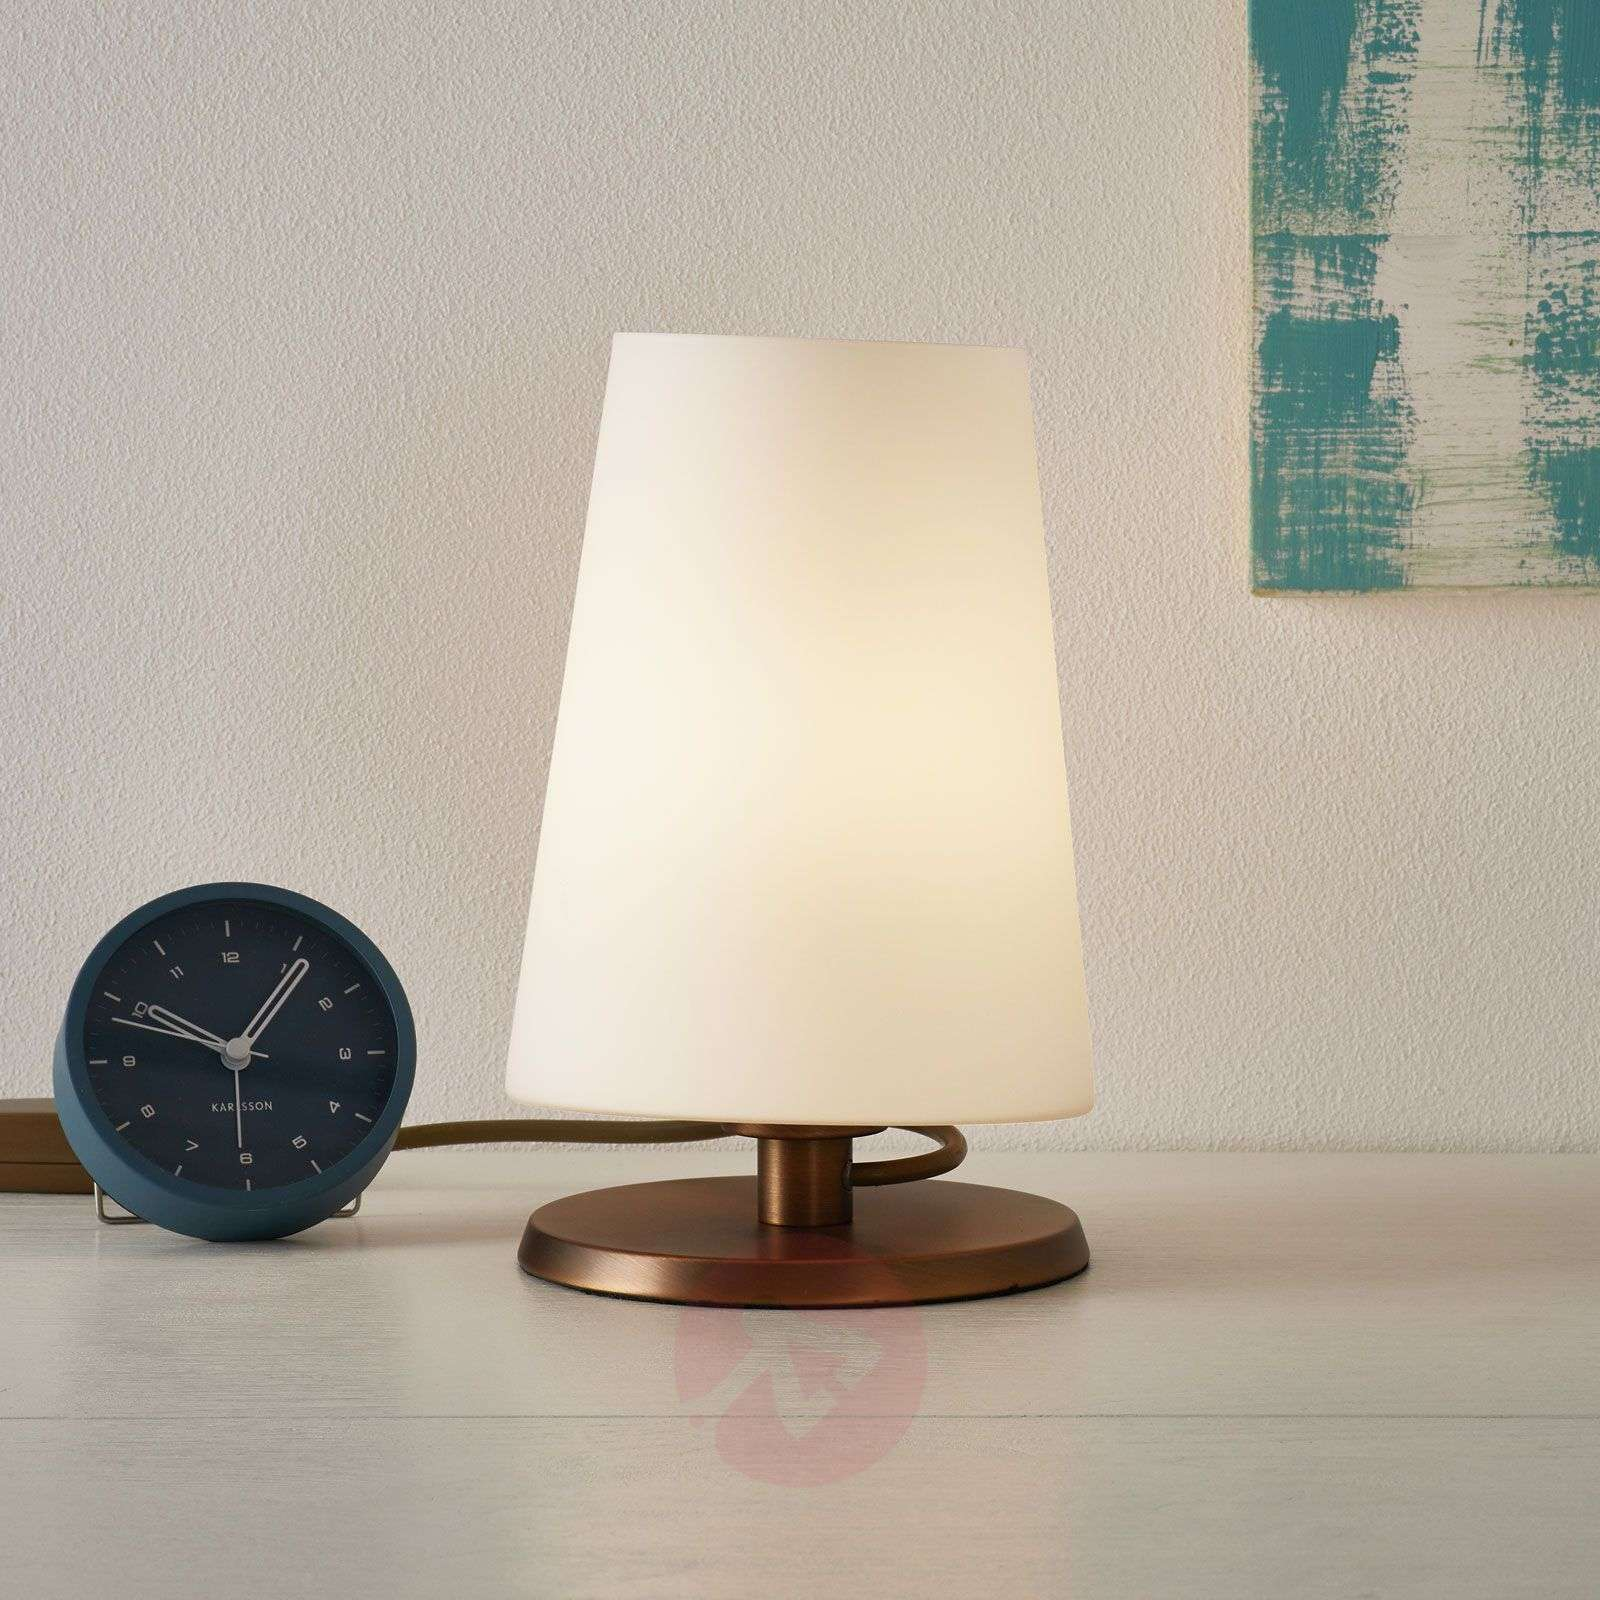 Ancilla table lamp with bronze touch dimmer-8509745-01